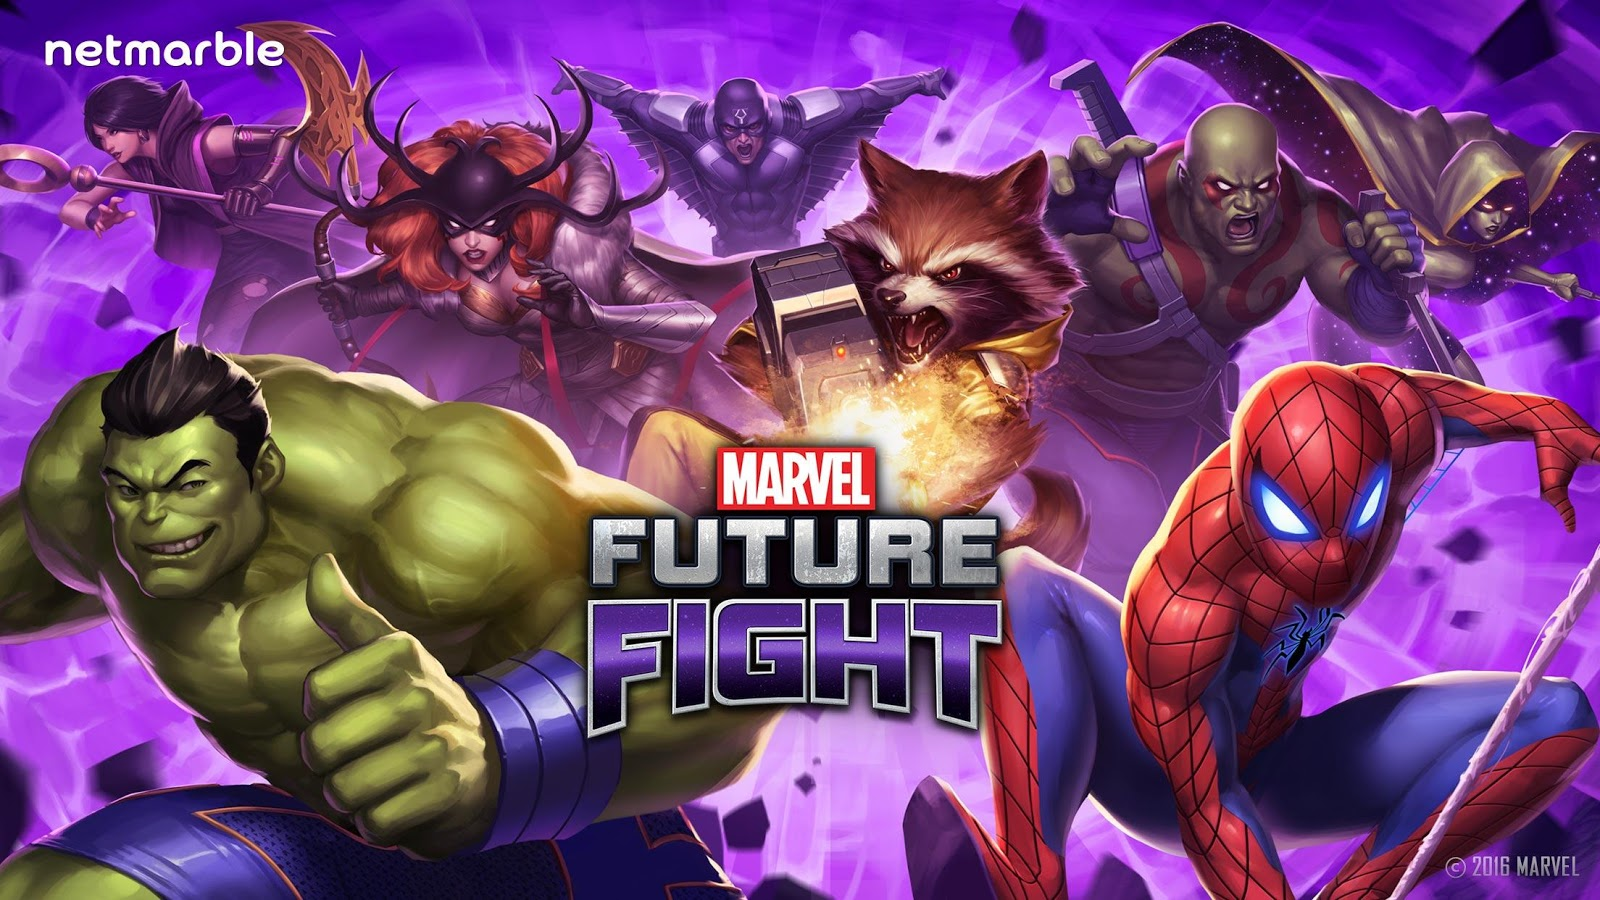 MARVEL Future Fight - Netmarble